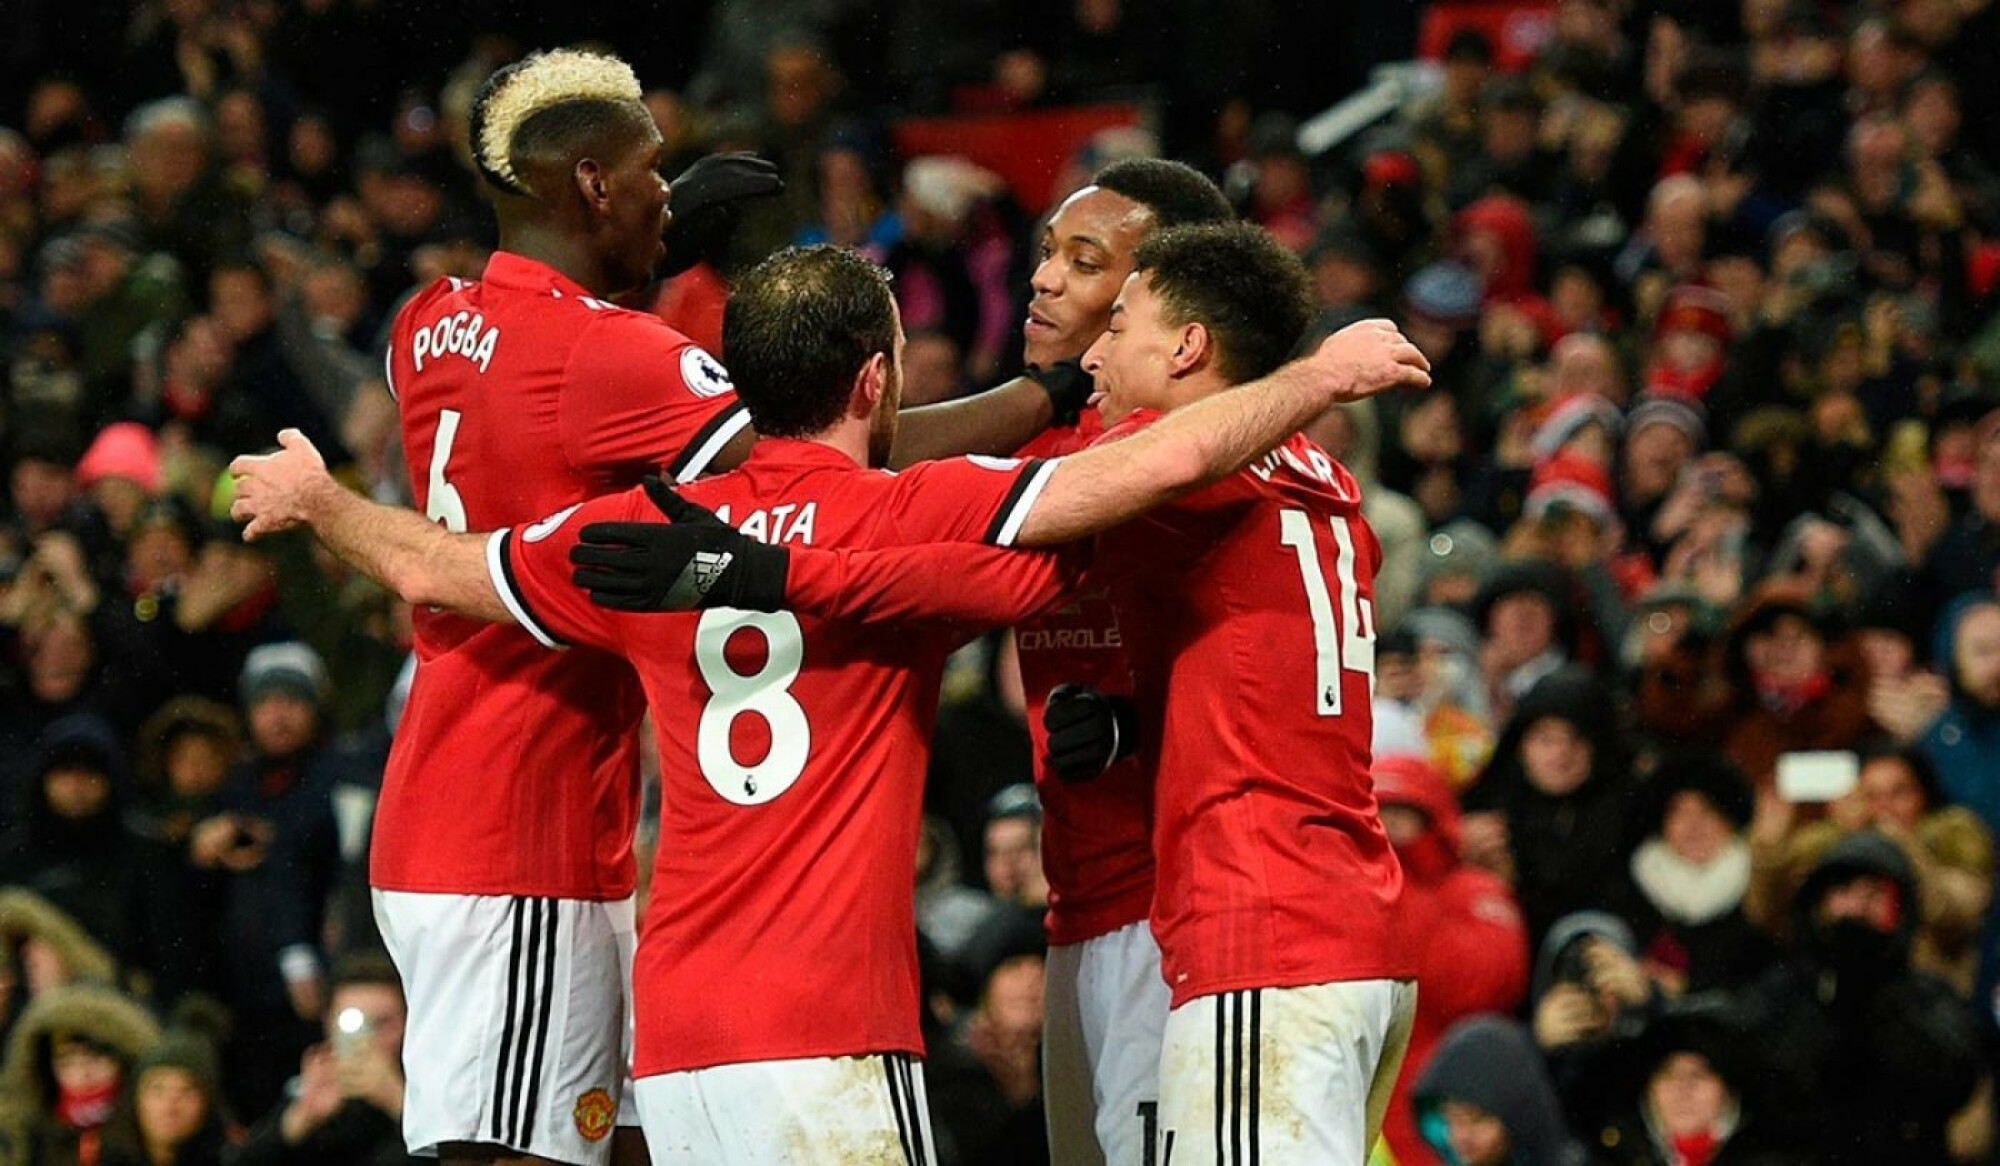 Manchester United could have been champions of England any other season